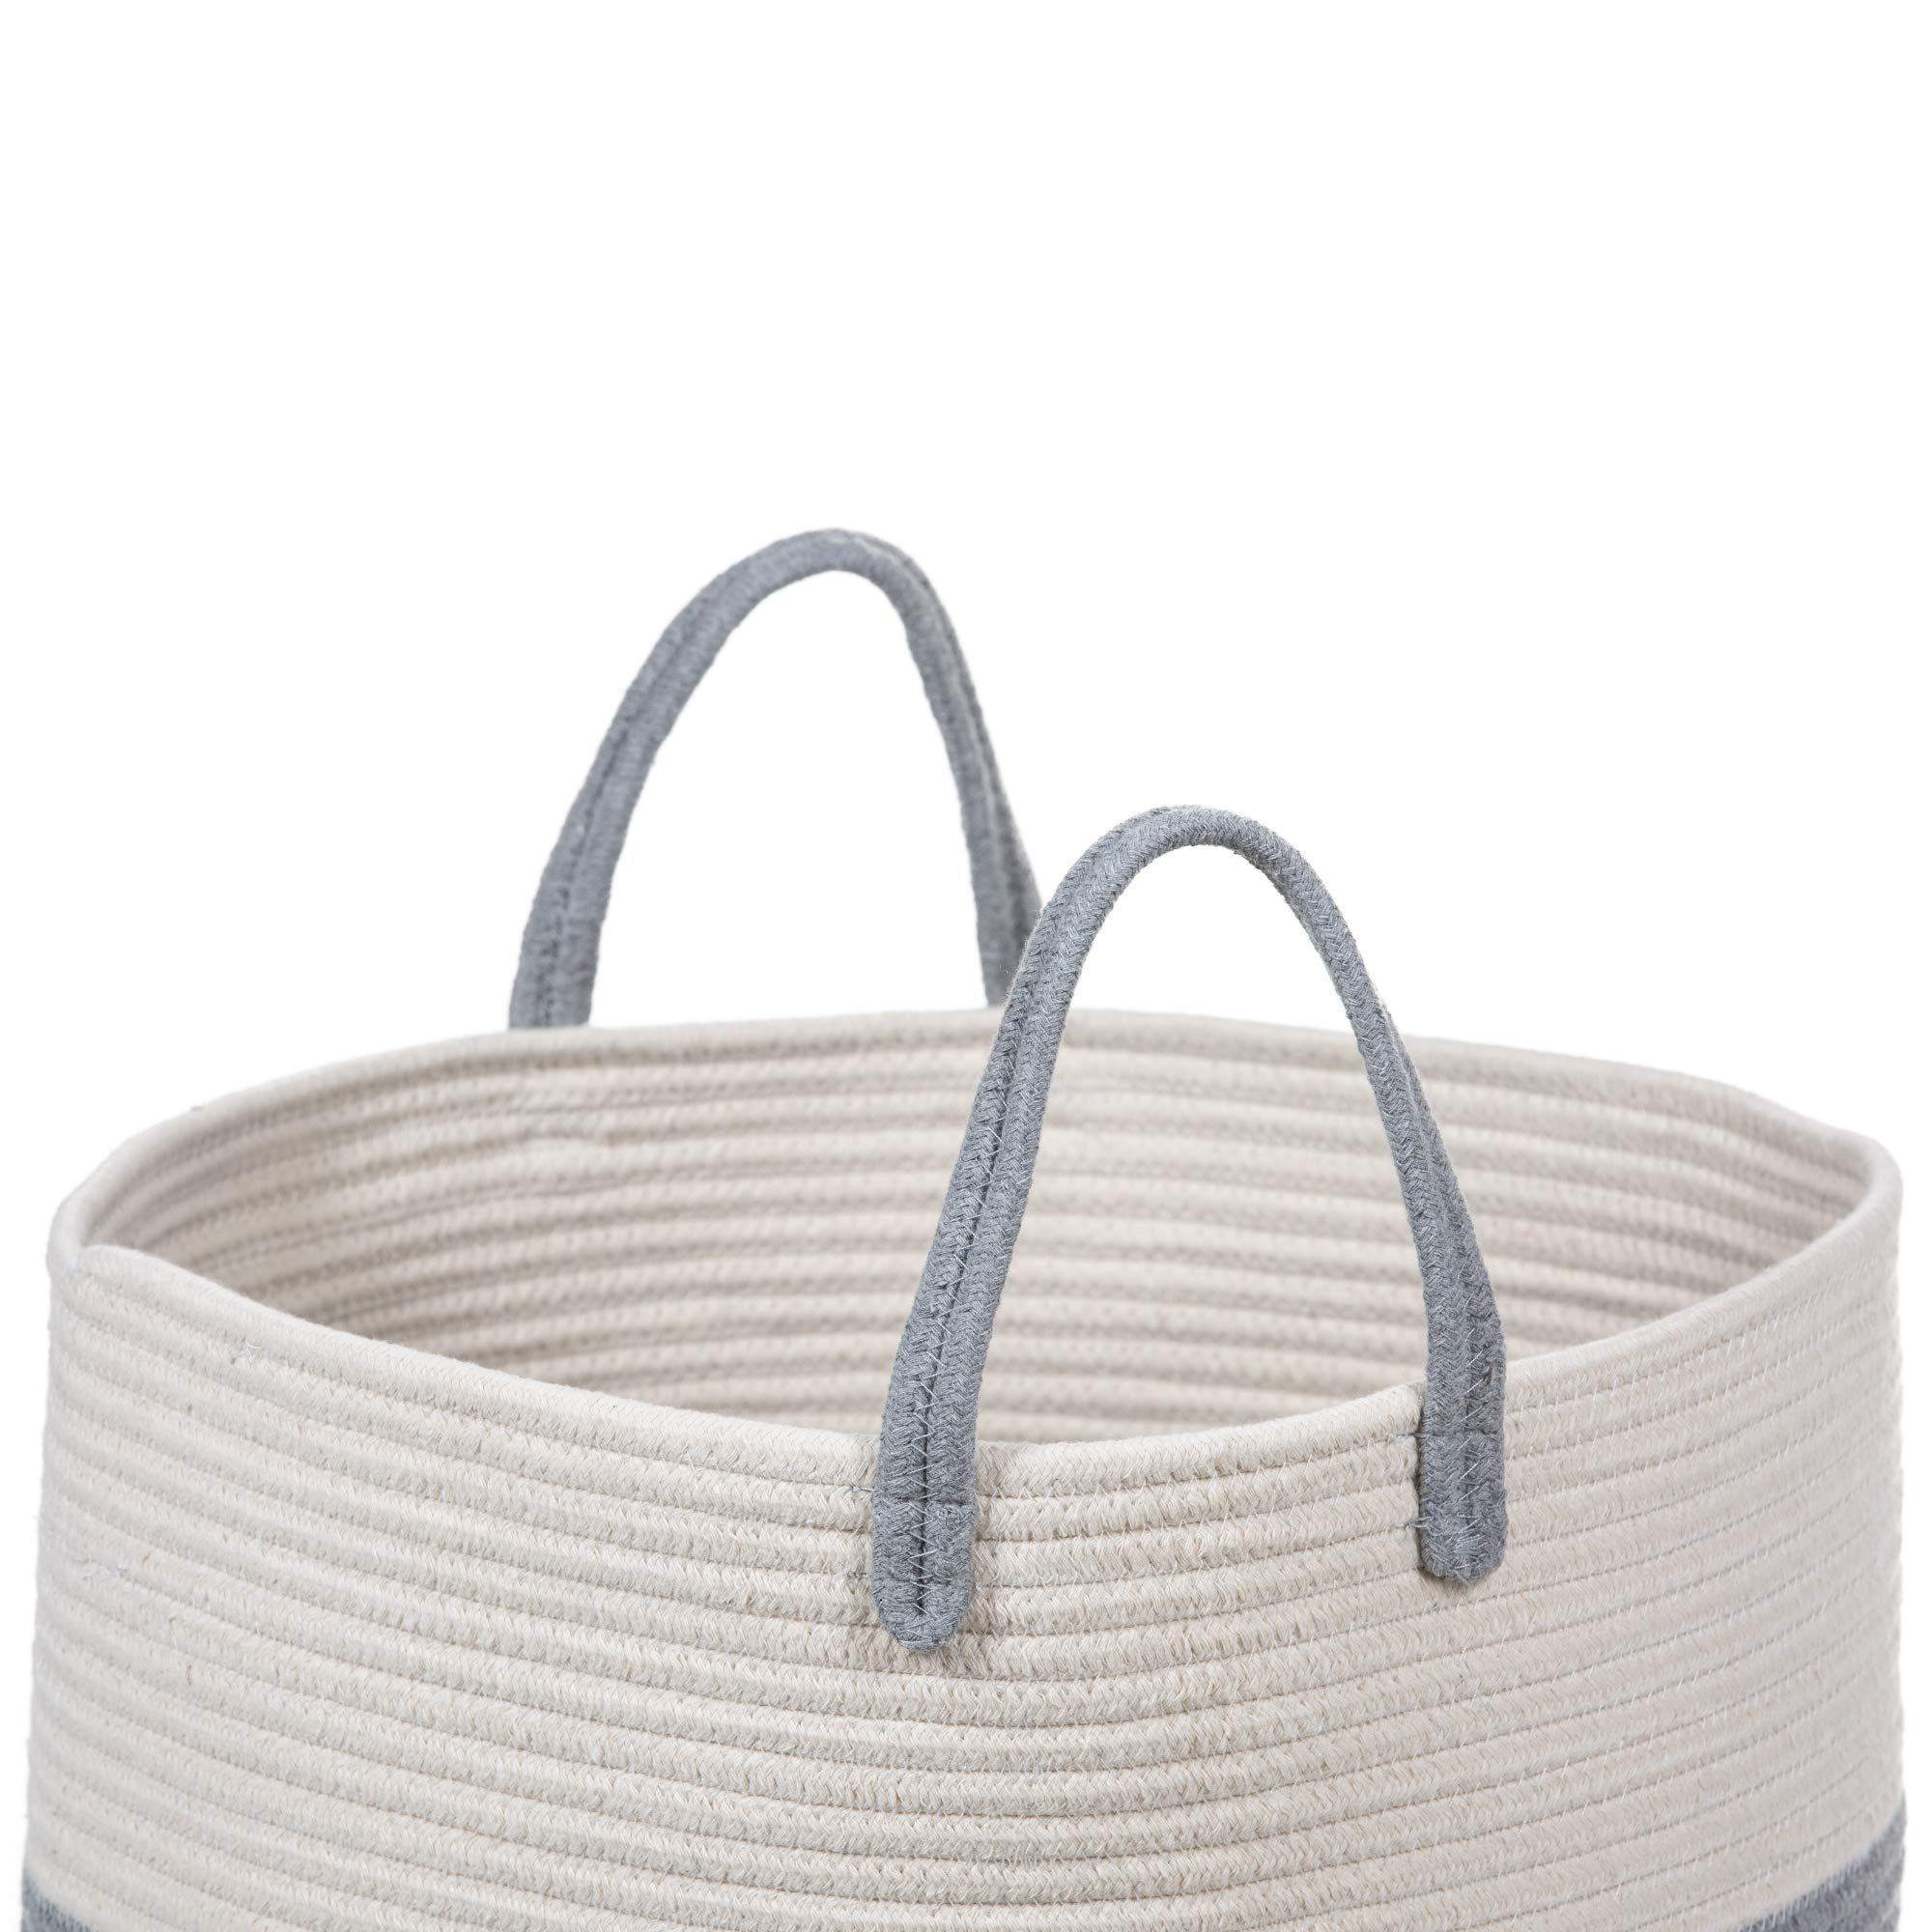 Extra Large Cotton Rope Basket 17 x 14.7 with Handles, for Baby Laundry Basket Woven Blanket Basket Nursery Bin by YOONLIVING (Image #3)